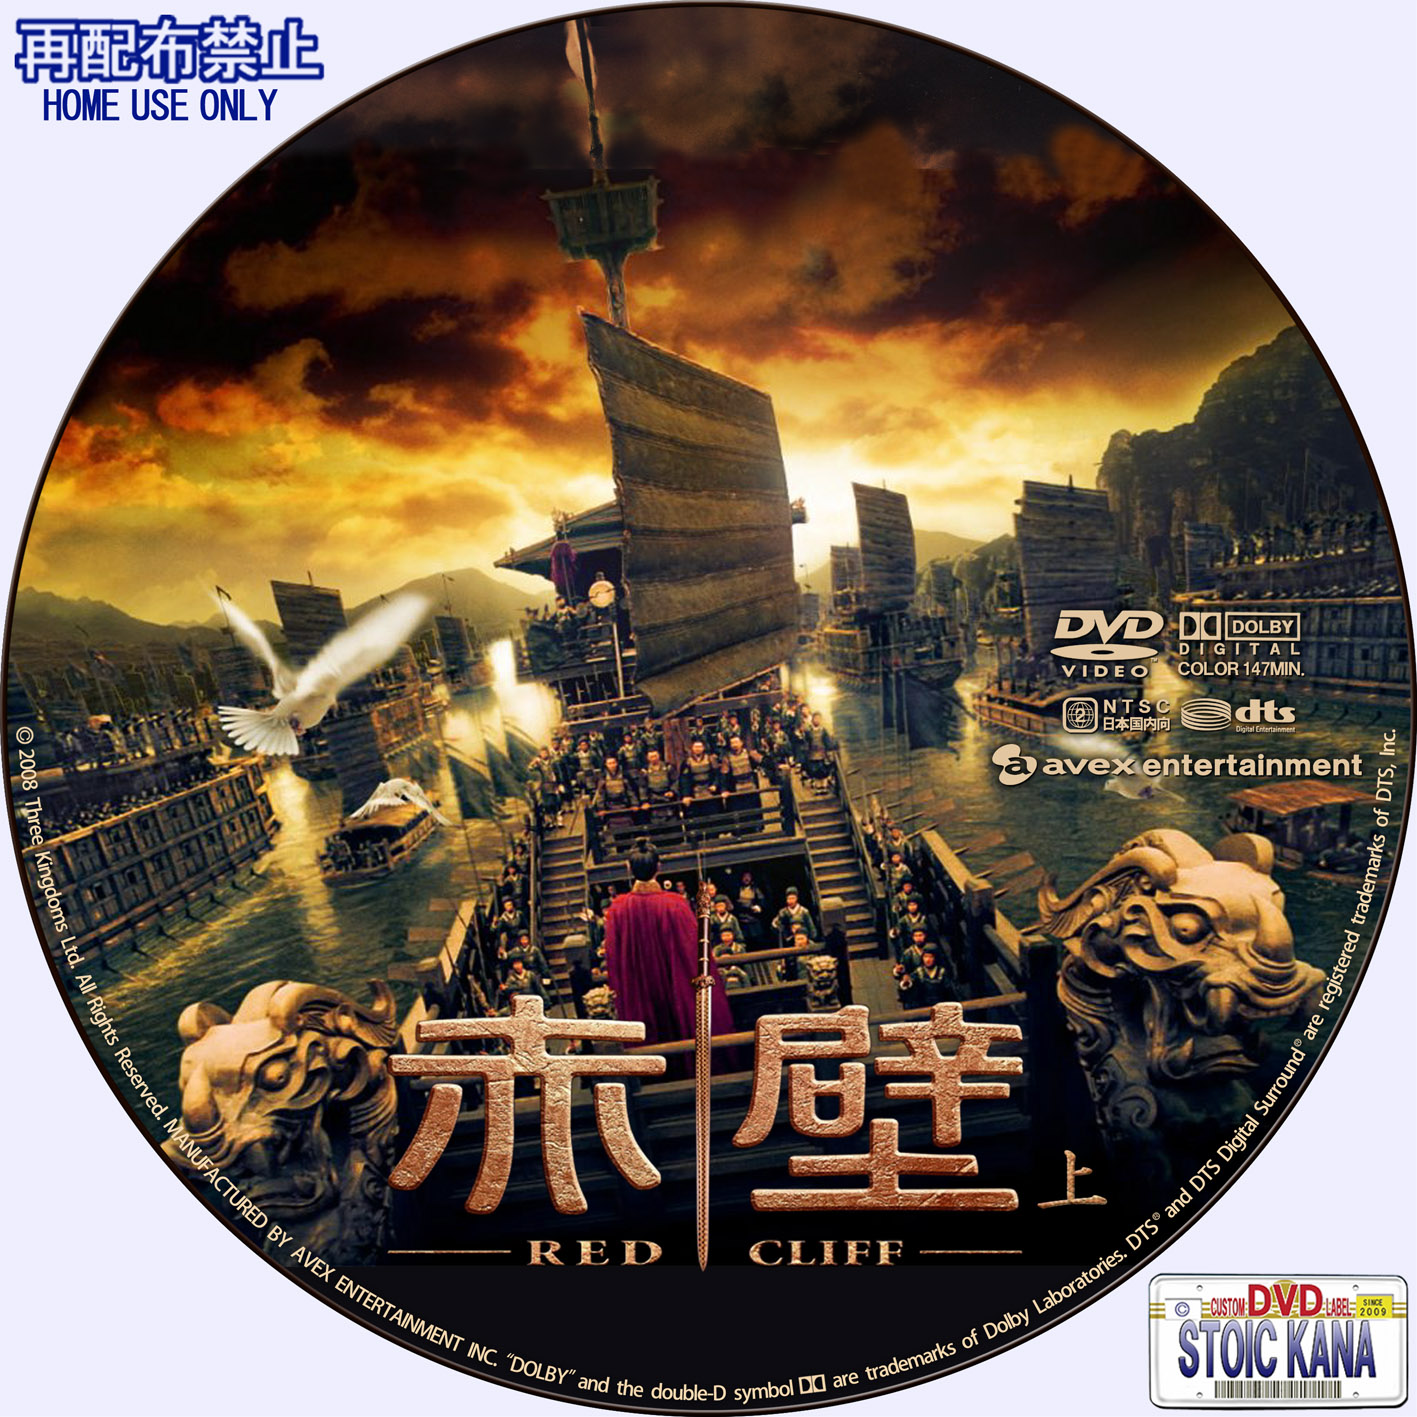 red cliff movie Watch free red cliff 2 full movie with english subtitle watch red cliff 2 online free the second part depicts the legendary 208 ad battle that heralded the end of the han dynasty.